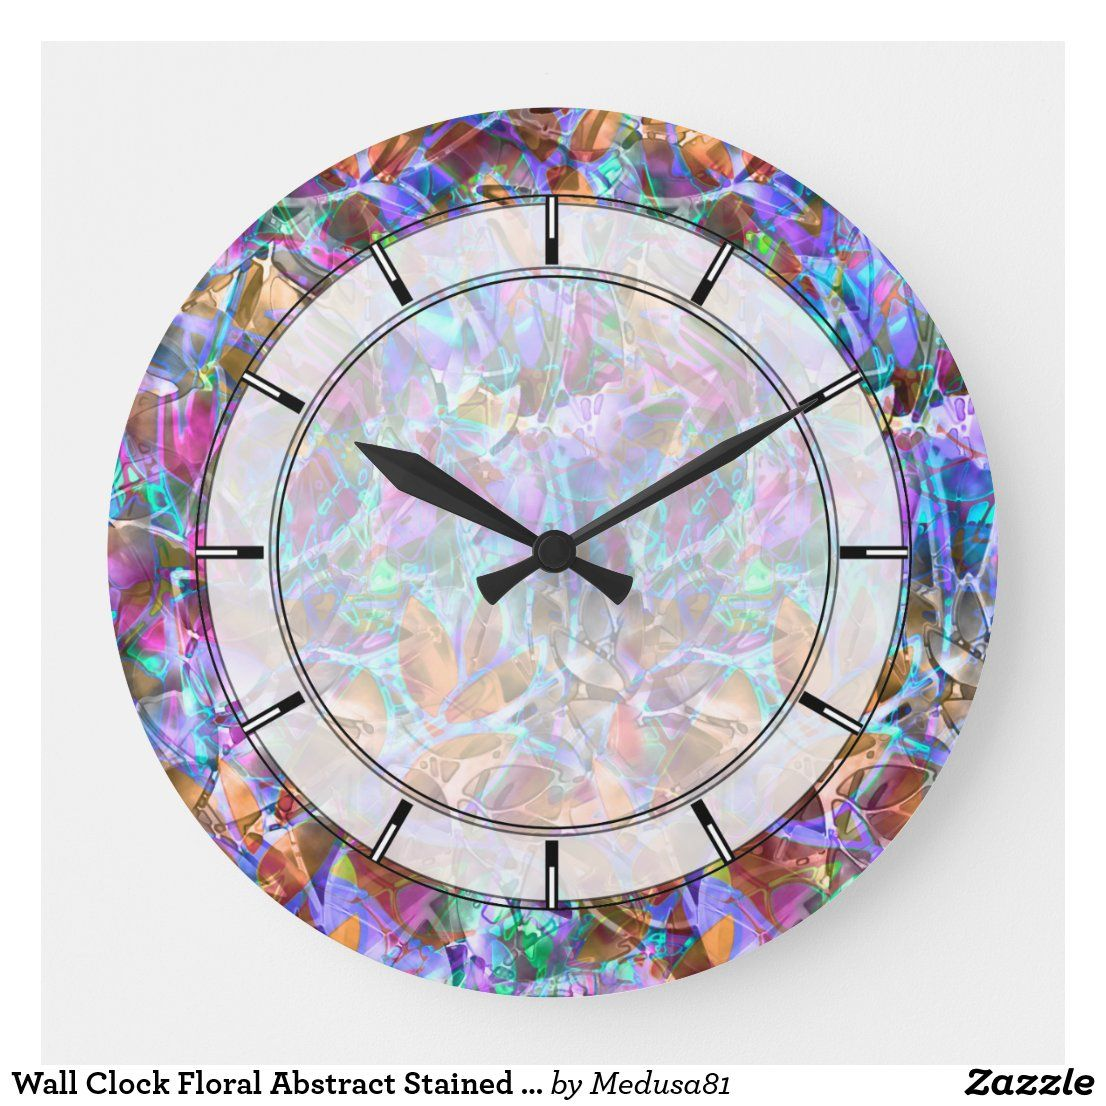 Wall Clock Floral Abstract Stained Glass Zazzle Com In 2020 Wall Clock Abstract Floral Custom Wall Clocks